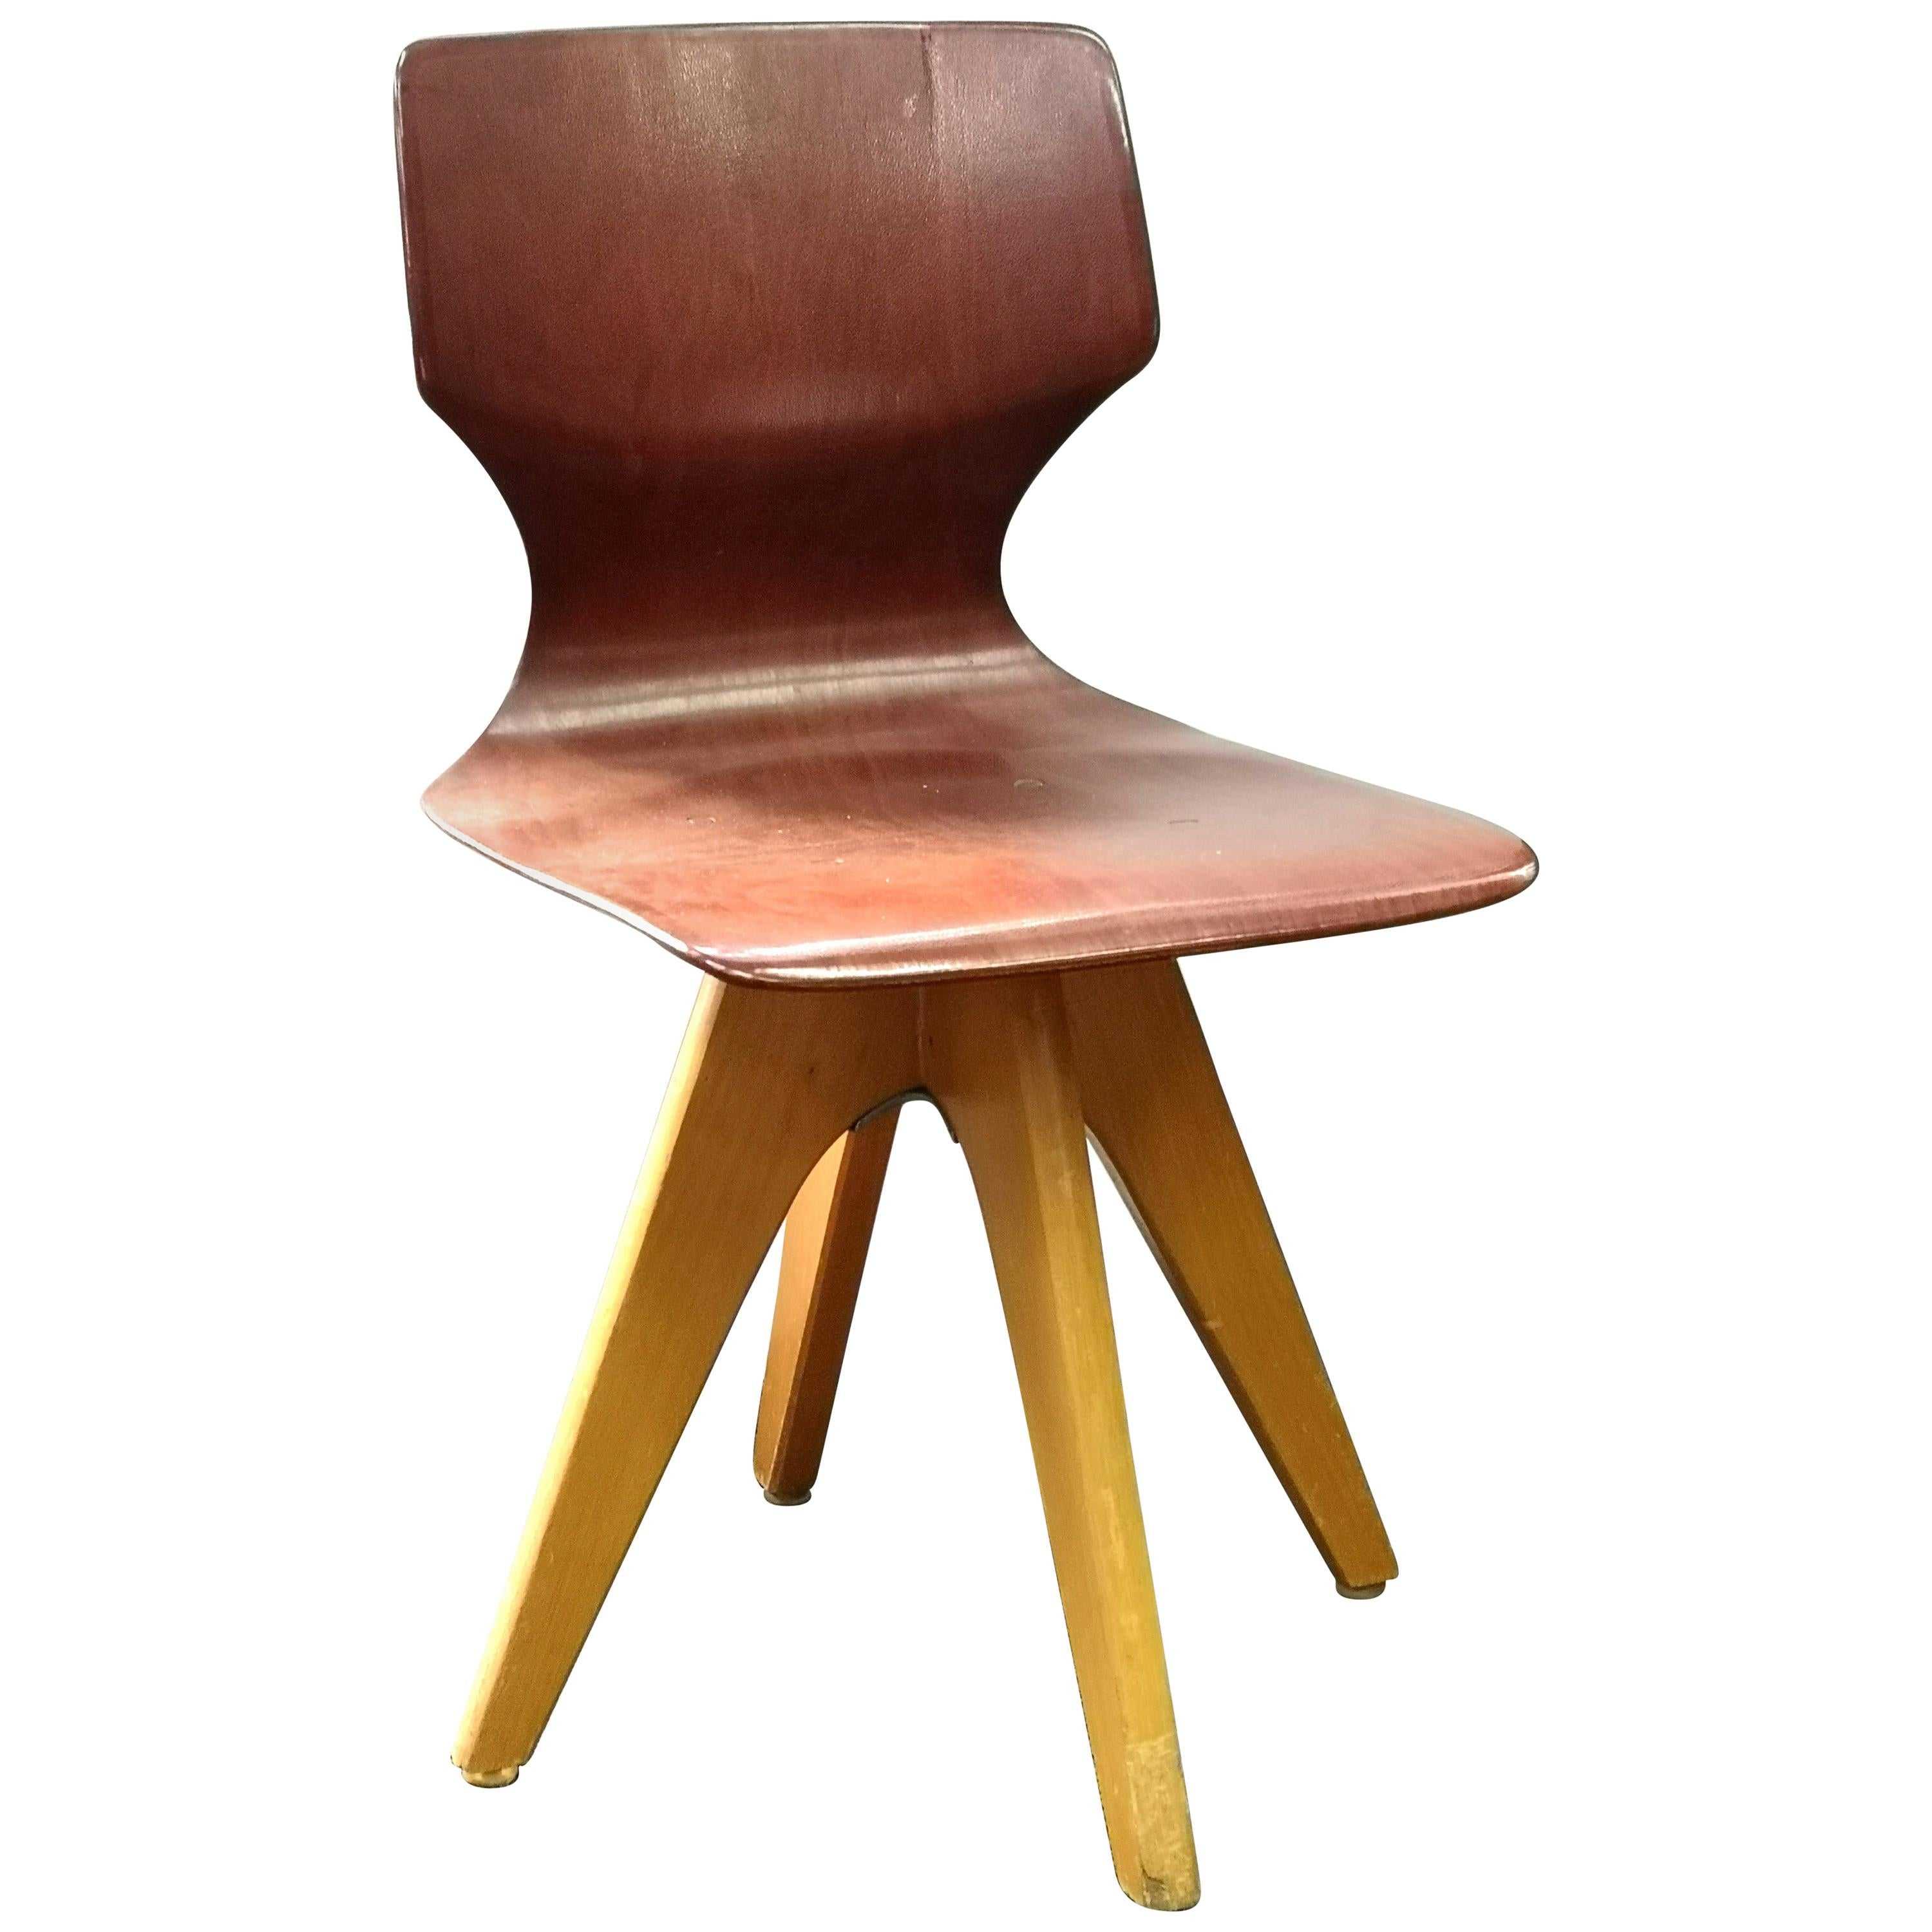 Vintage Pagwood Childrens Chair by Adam Stegner, for Pagholz Flötotto, 1960s